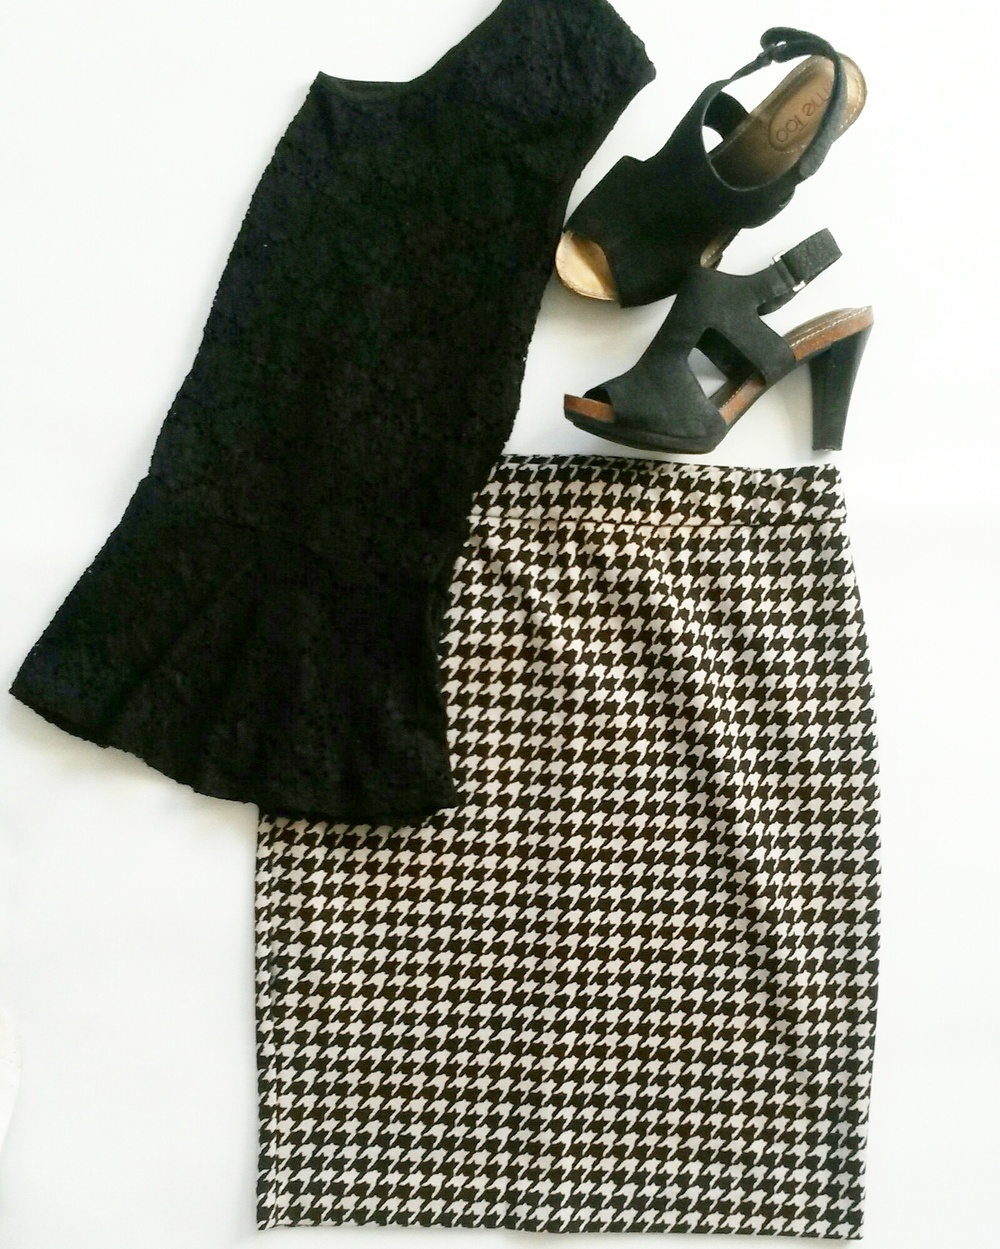 Black peplum lace top, houndstooth pencil skirt, black suede cutout heels, all thrifted